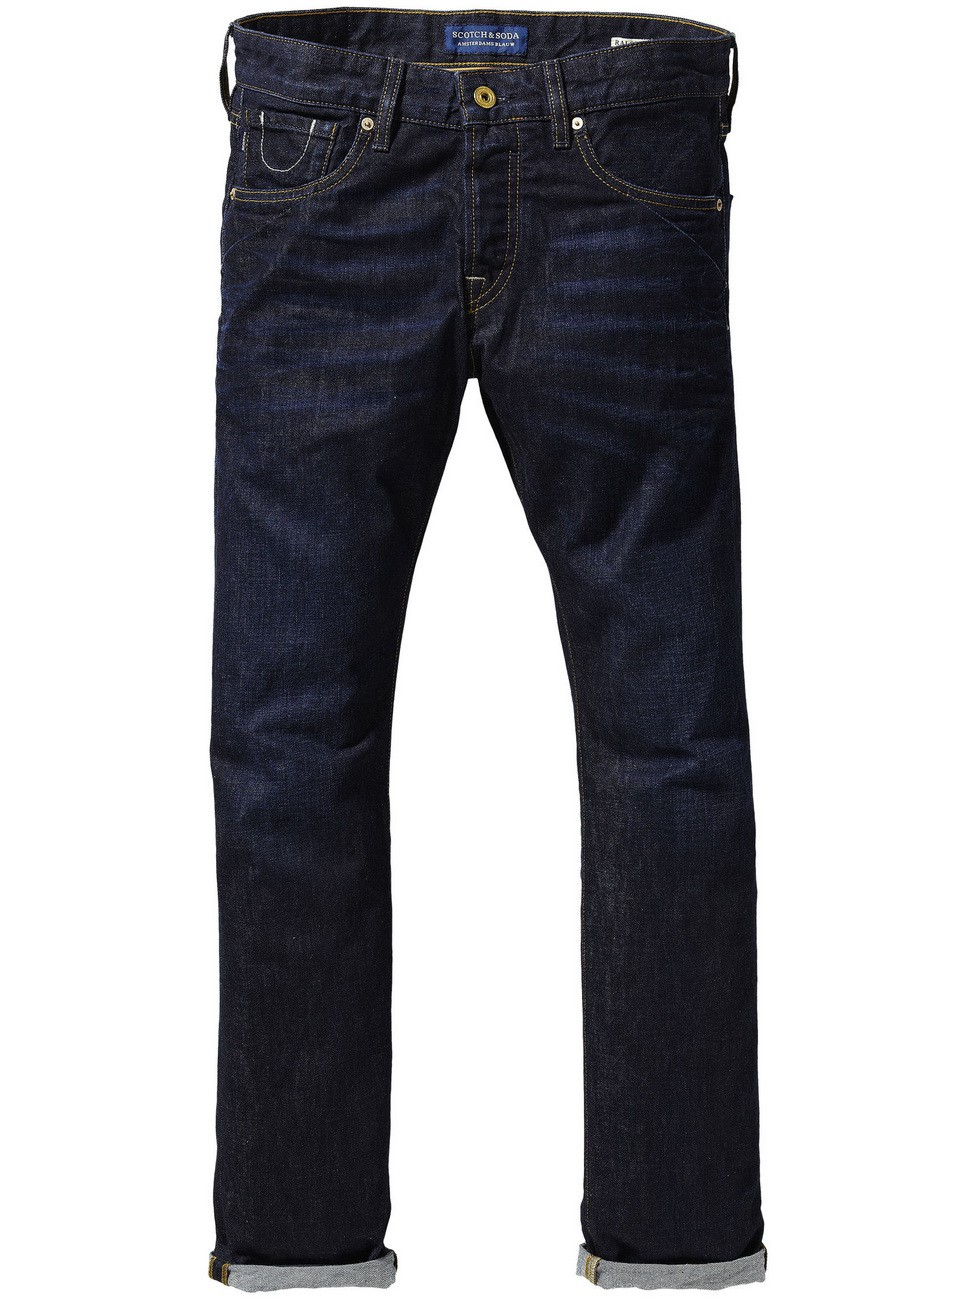 Scotch & Soda Herren Jeans Ralston Touchdown - Slim Fit - Blau - Dark Blue